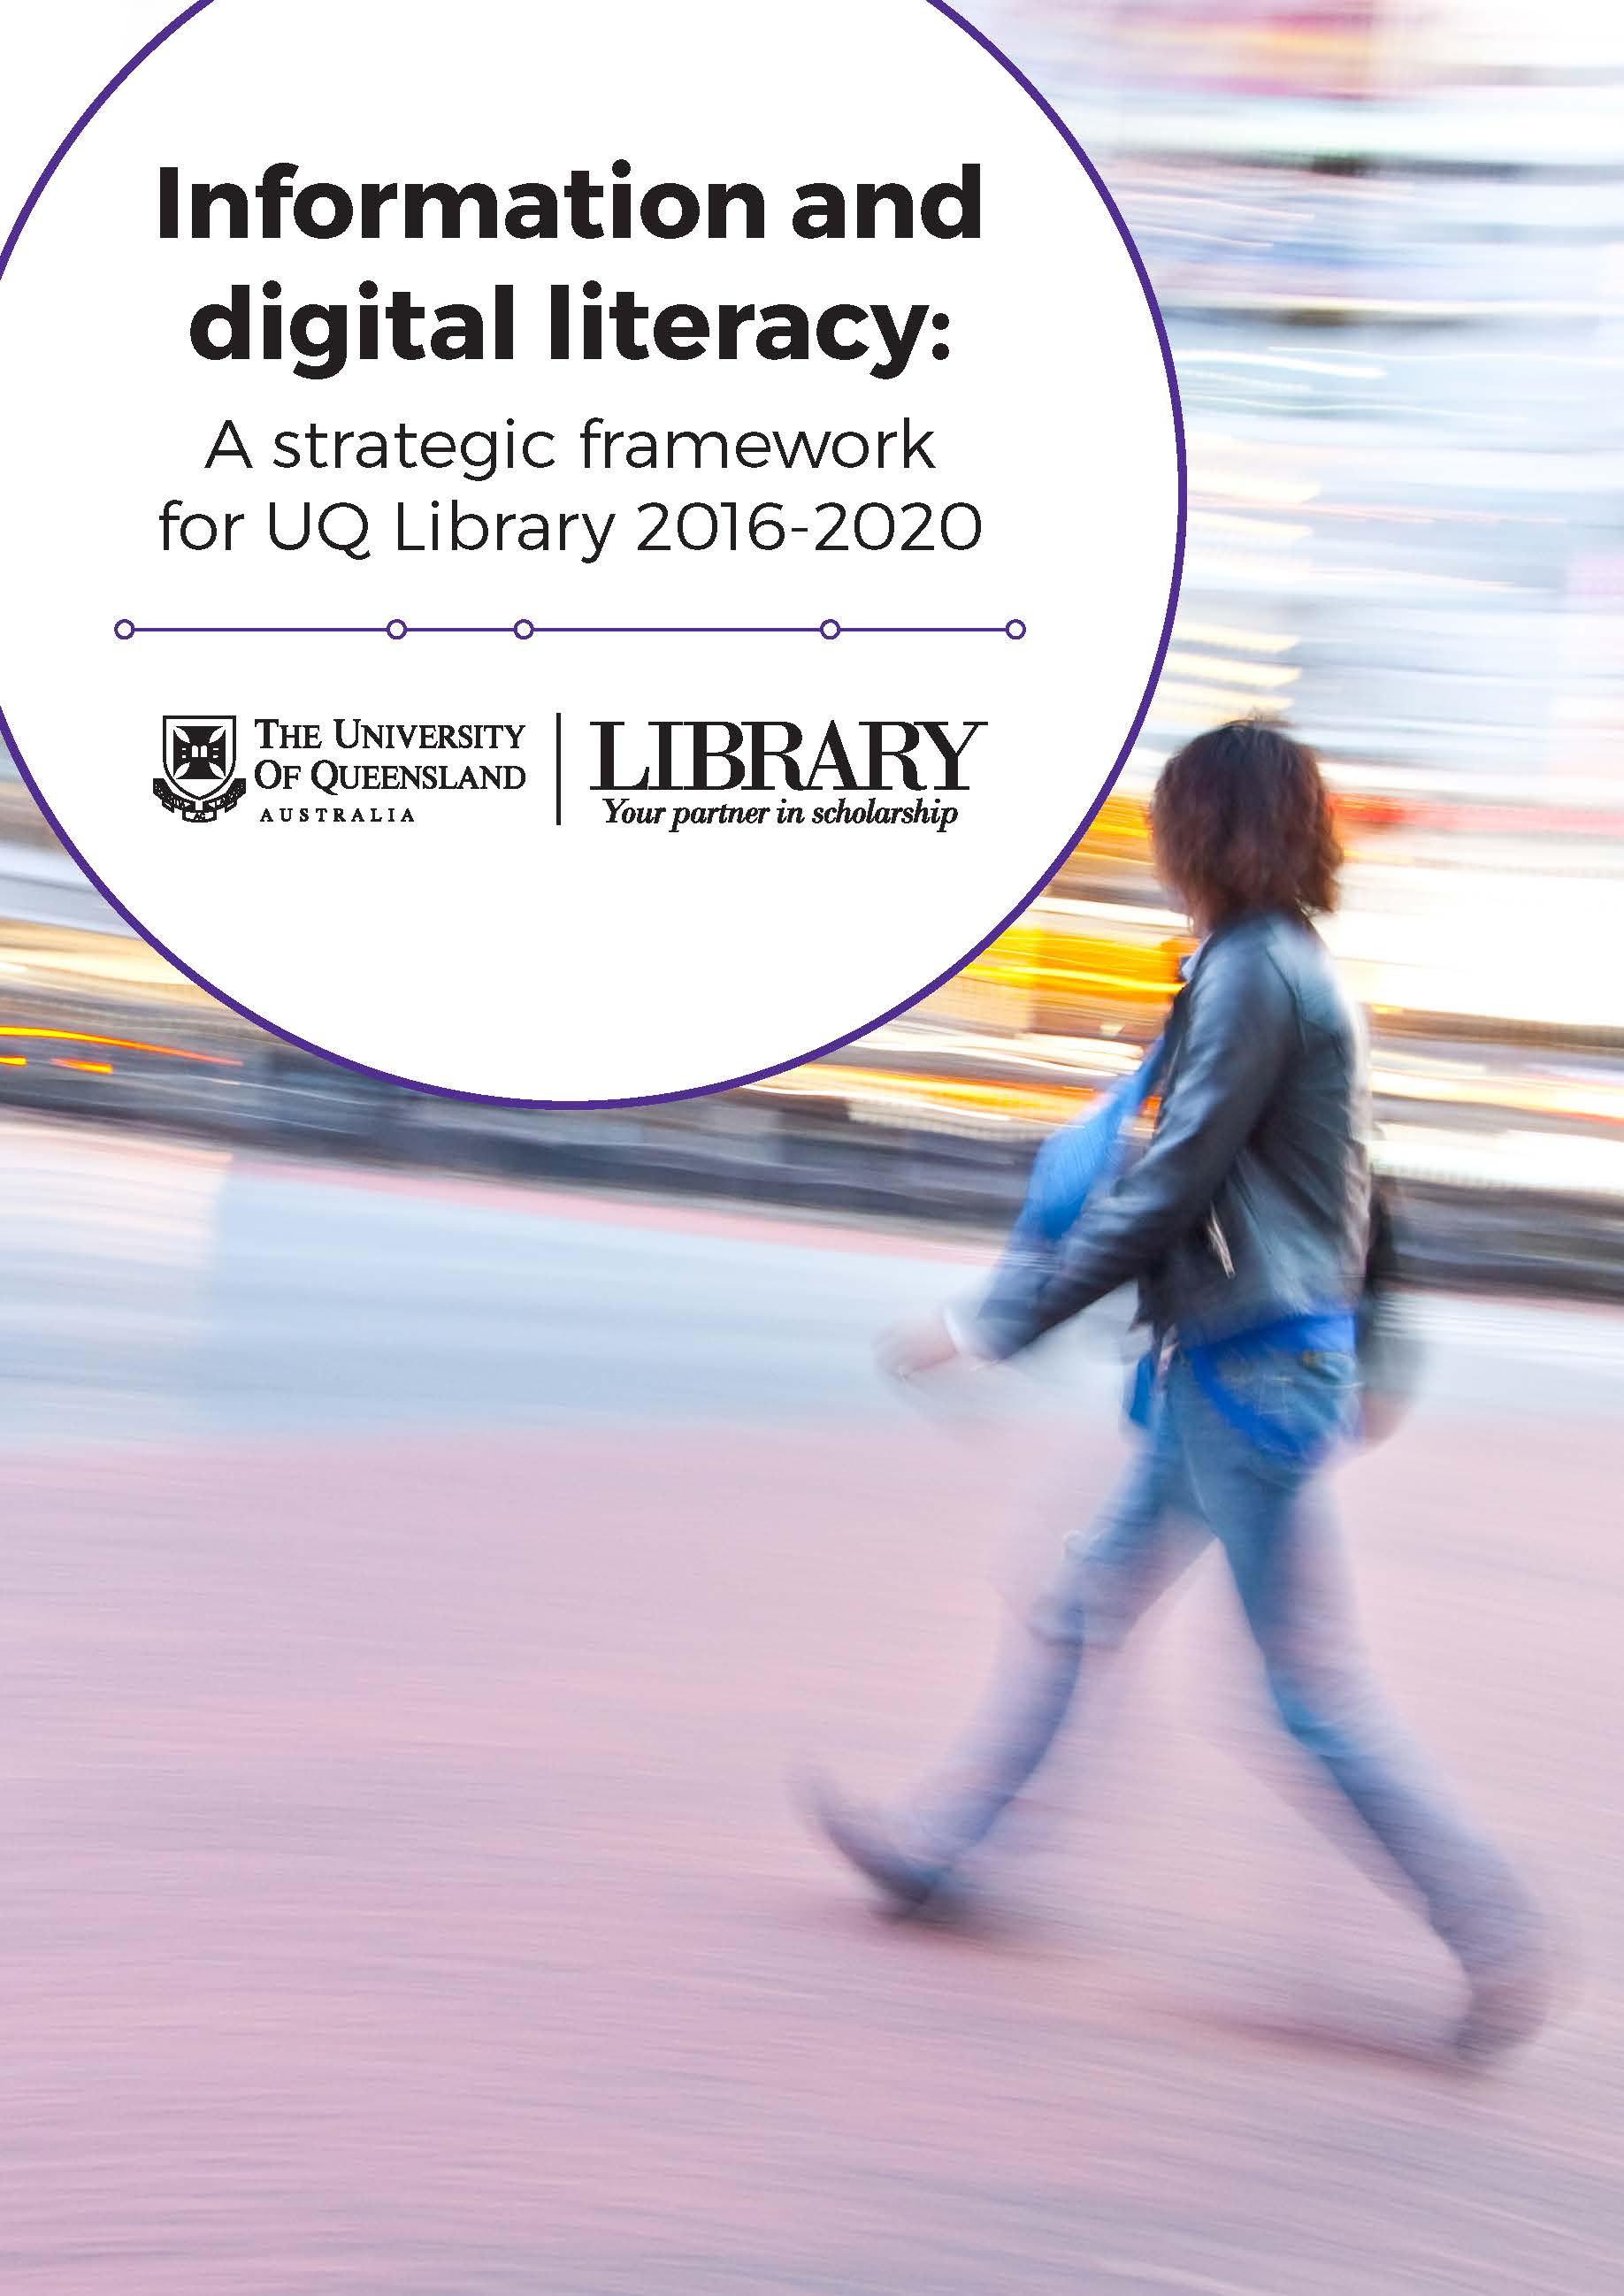 Library Information and Digital Literacy Strategic Framework (PDF, 3.8 MB)